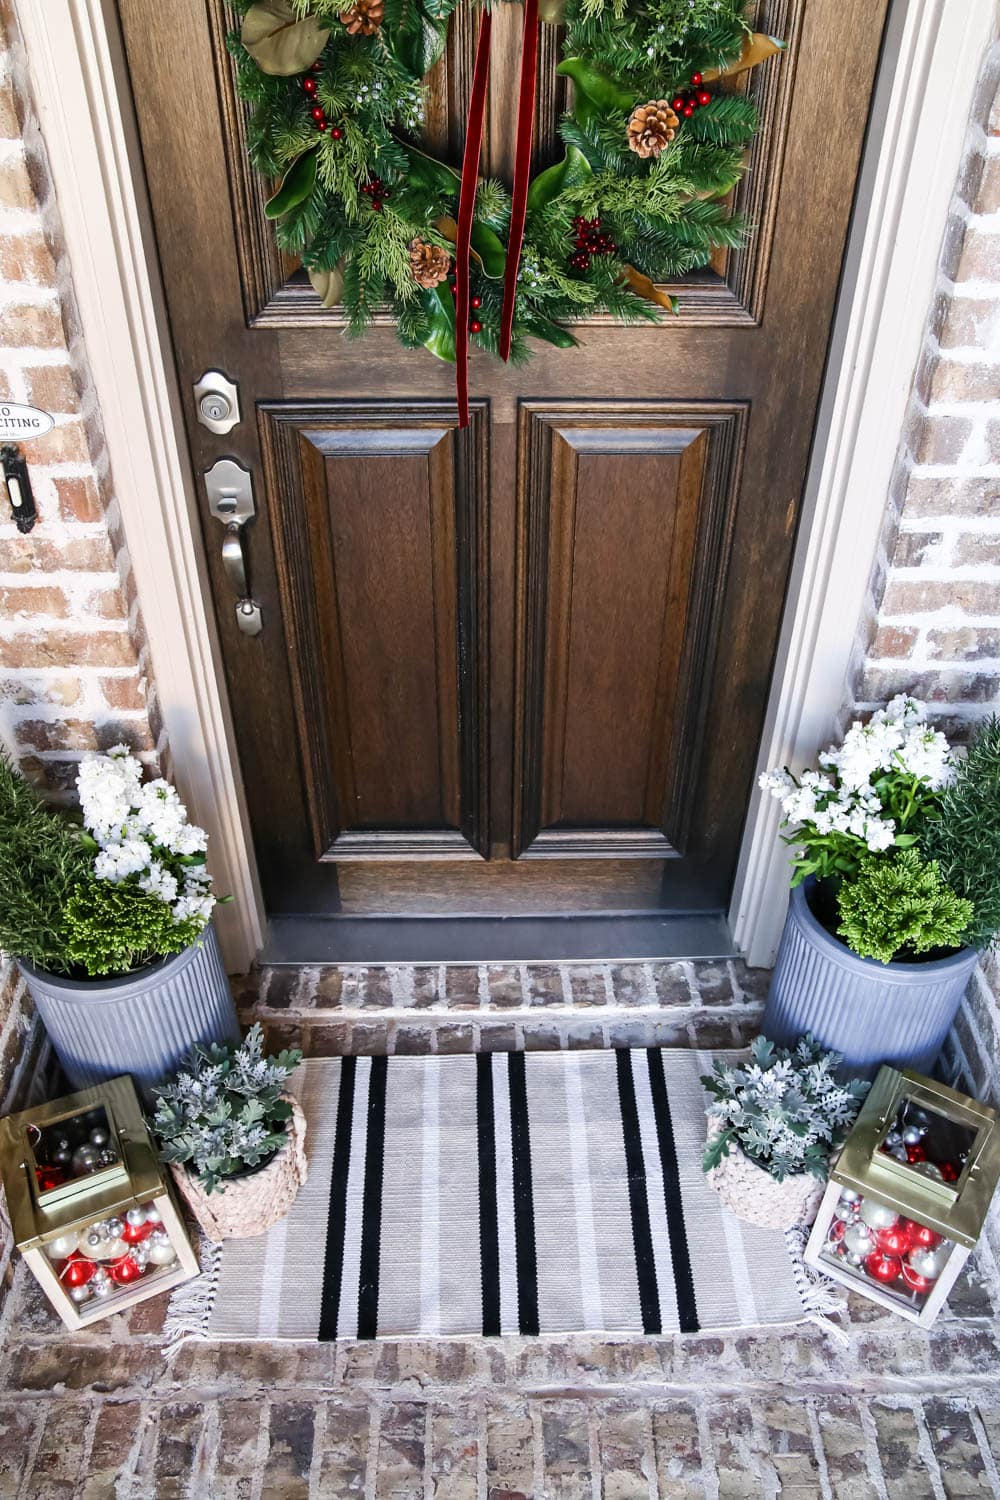 A striped door mat adds a fun pop to this Christmas porch. #ABlissfulNest #christmasporch #christmasdecor